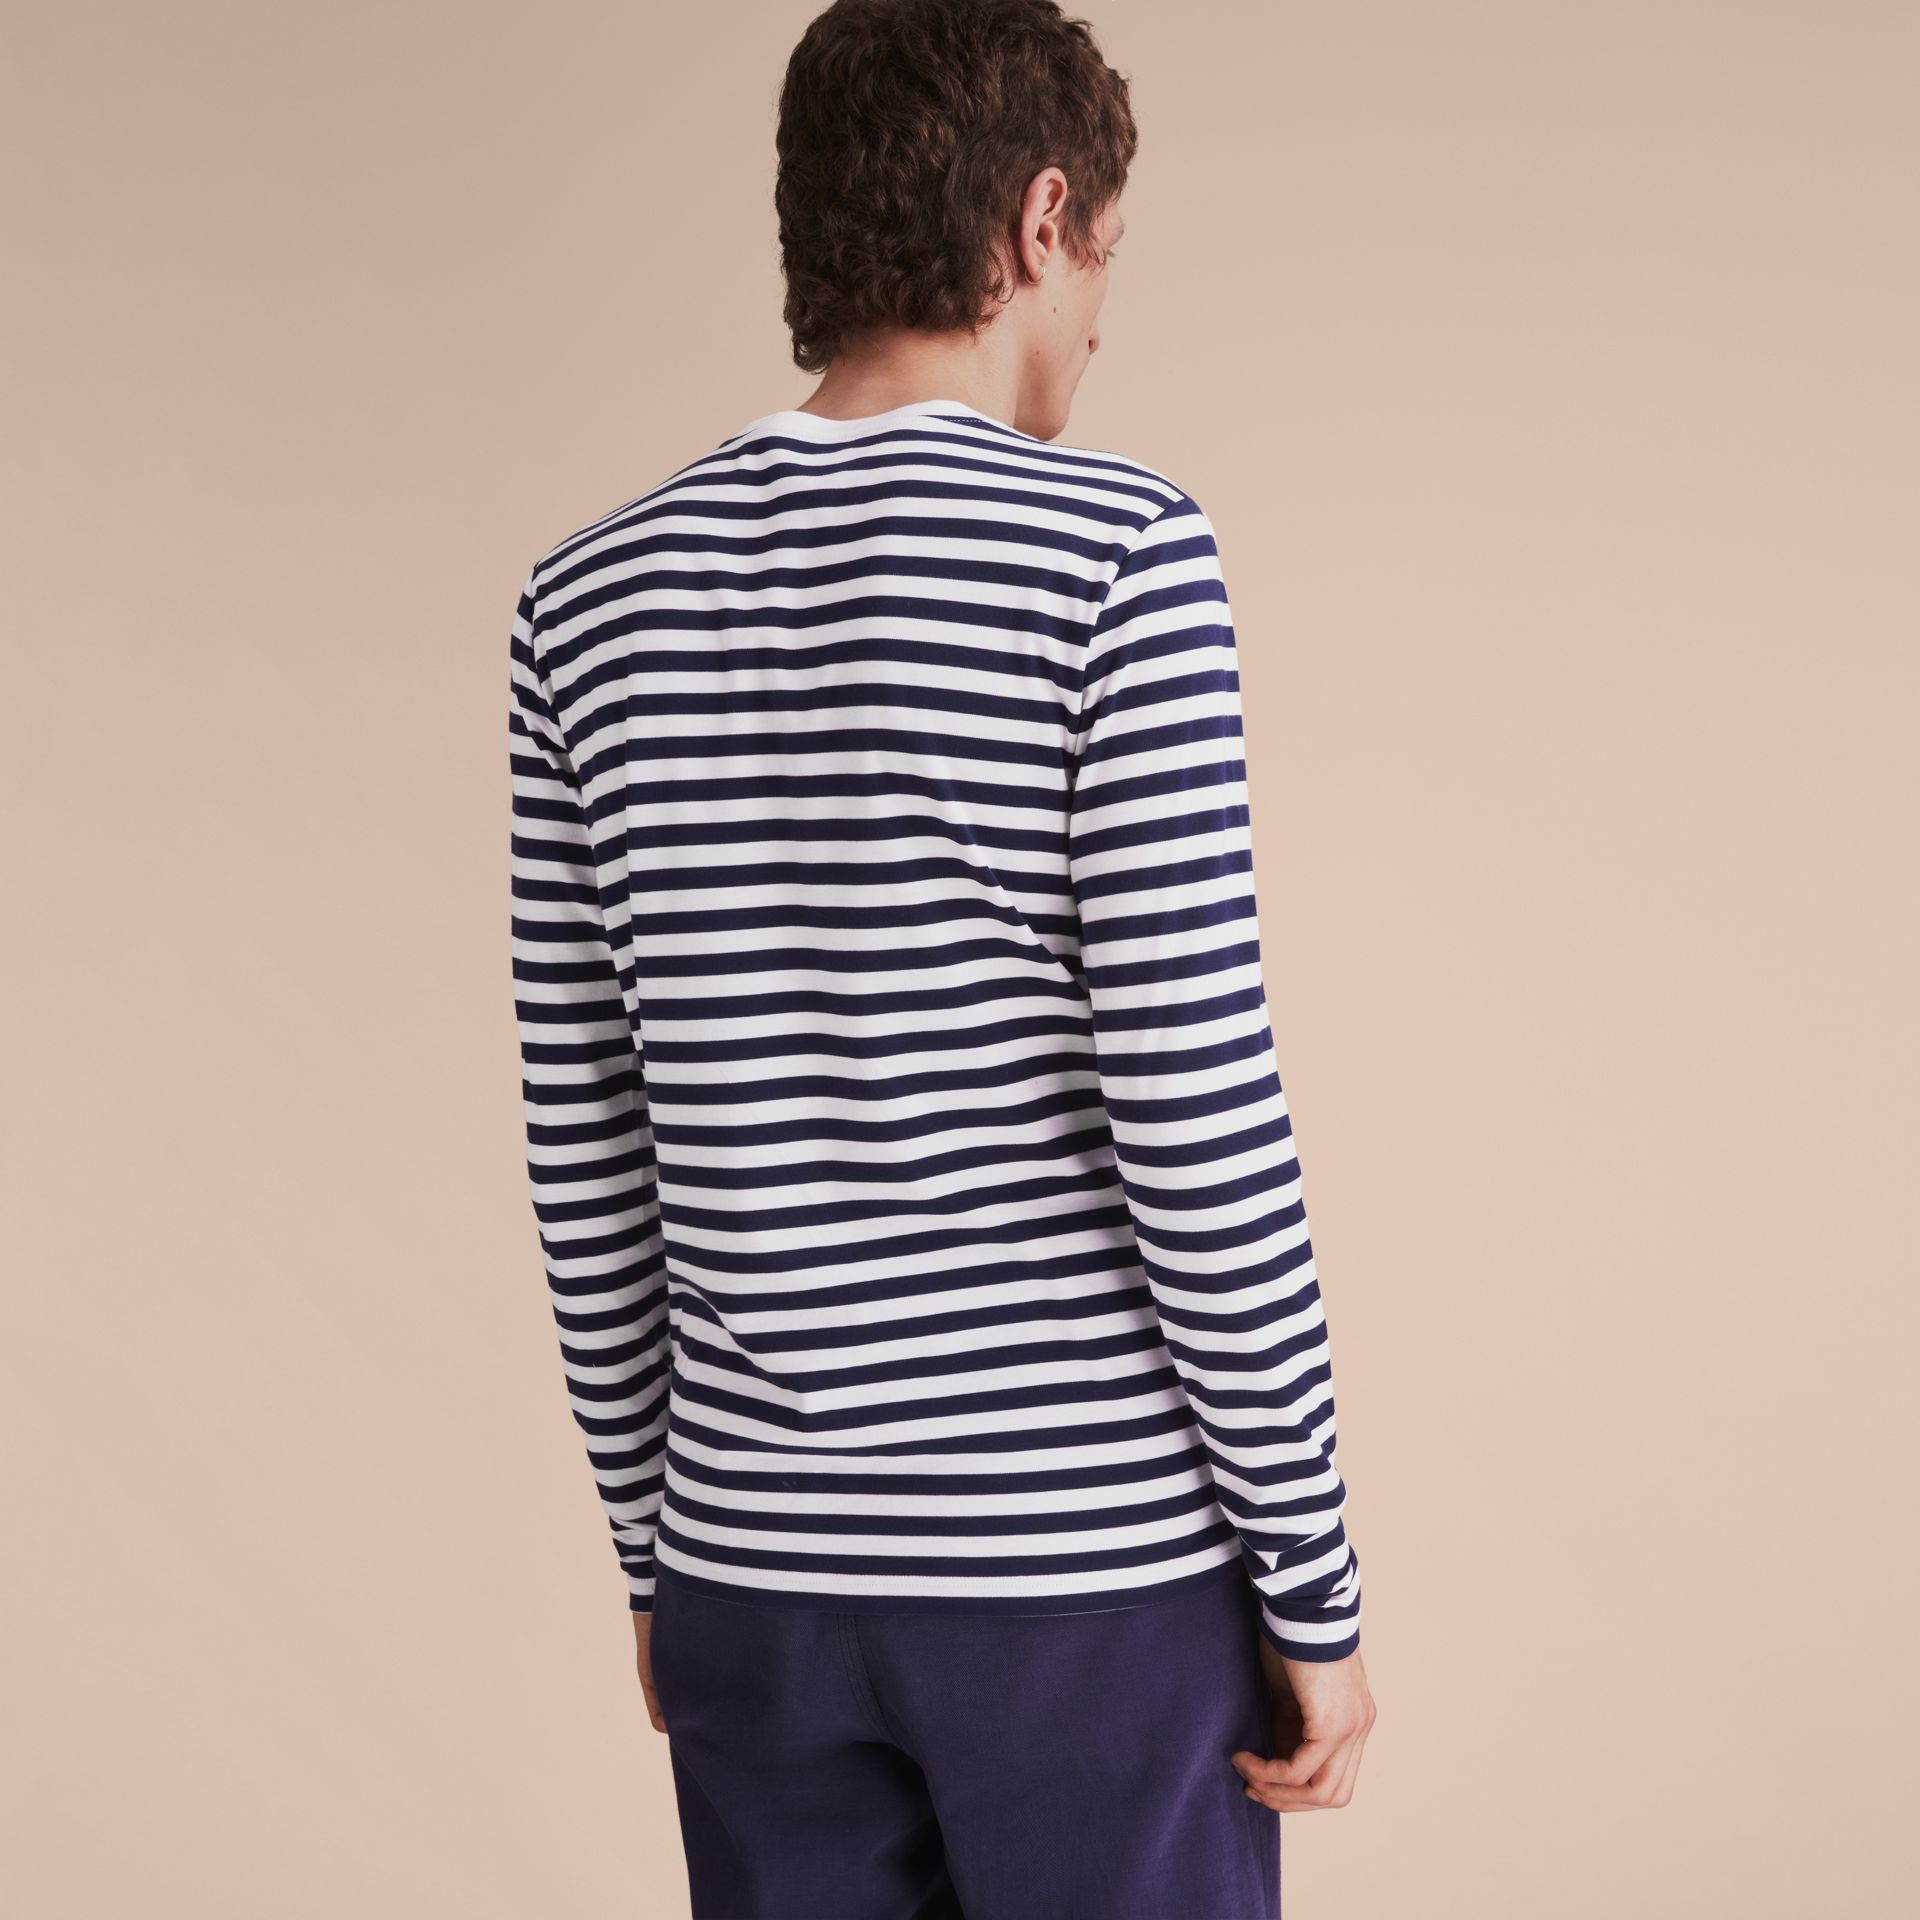 Unisex Breton Stripe Cotton Top with Lace Appliqué in Indigo - Men | Burberry Canada - gallery image 5